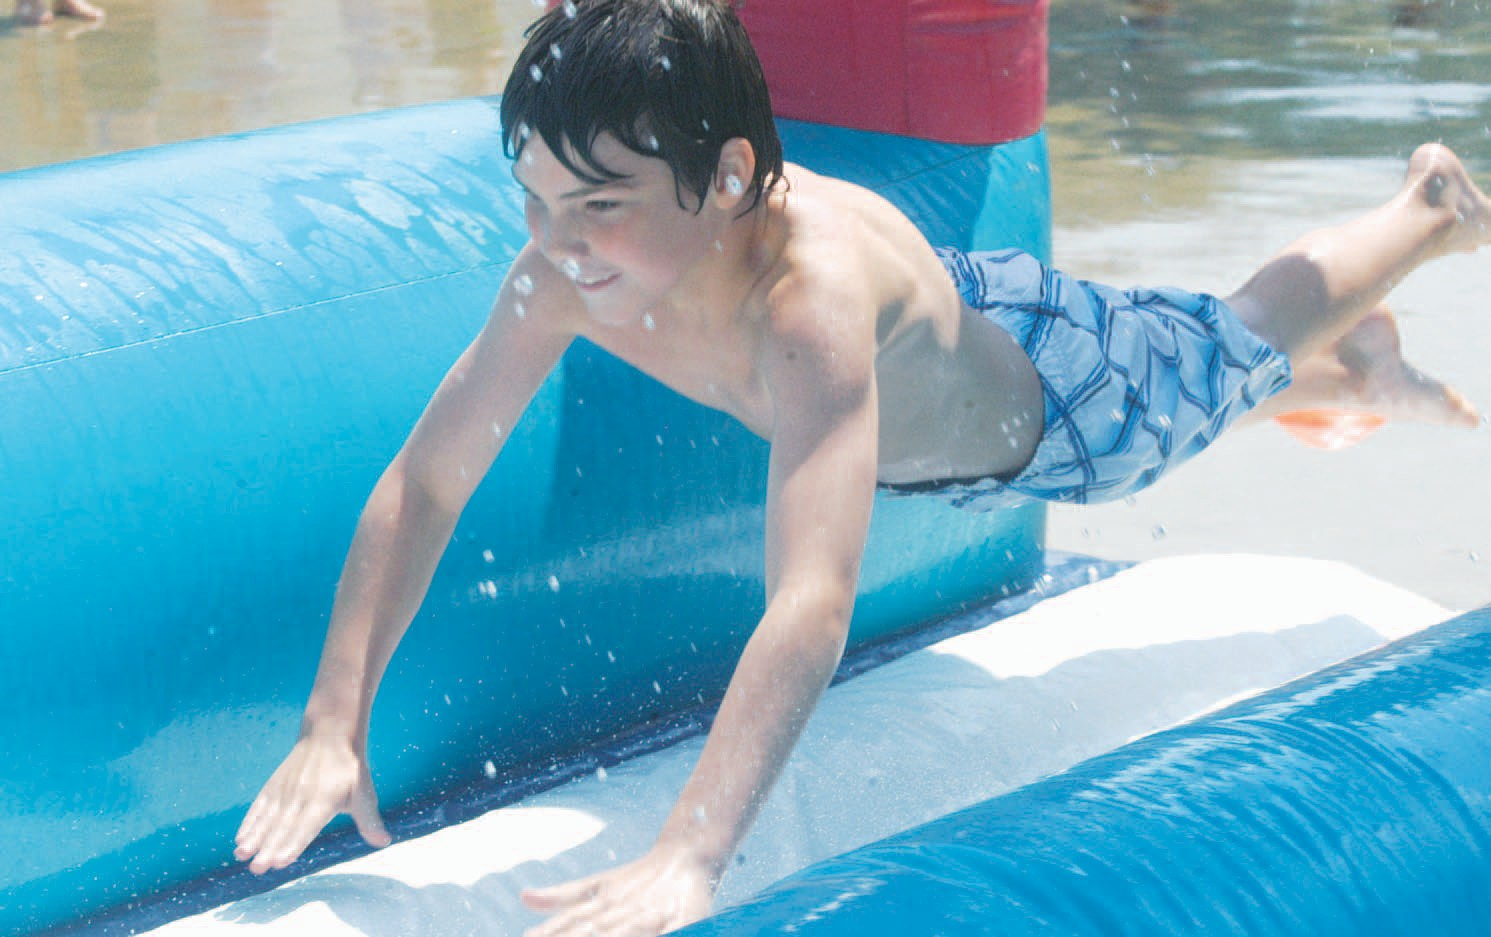 Brandt Behrens of Pleasanton enjoys catching some air on a water slide during a Vacation Bible School playday at First Baptist Church in Pleasanton.